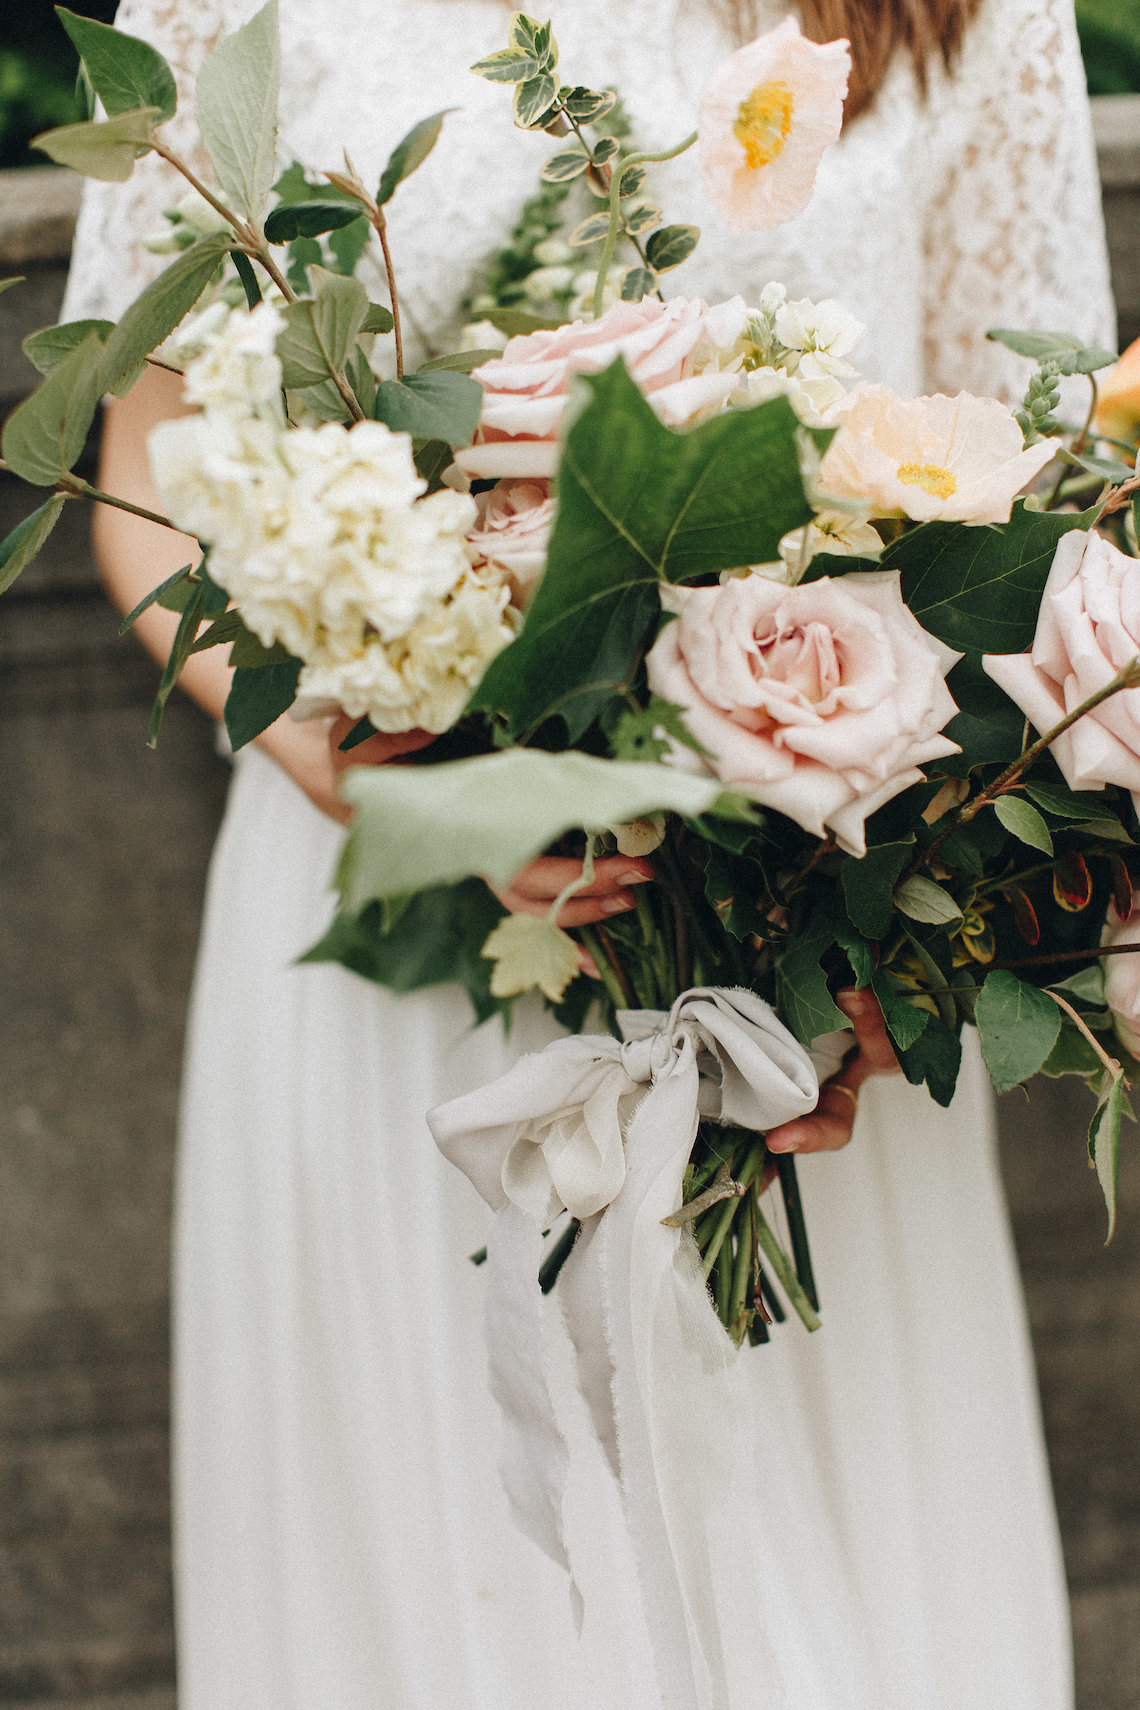 Artificial Wedding Bouquets In Sydney : Classical details and lush greenery bloved